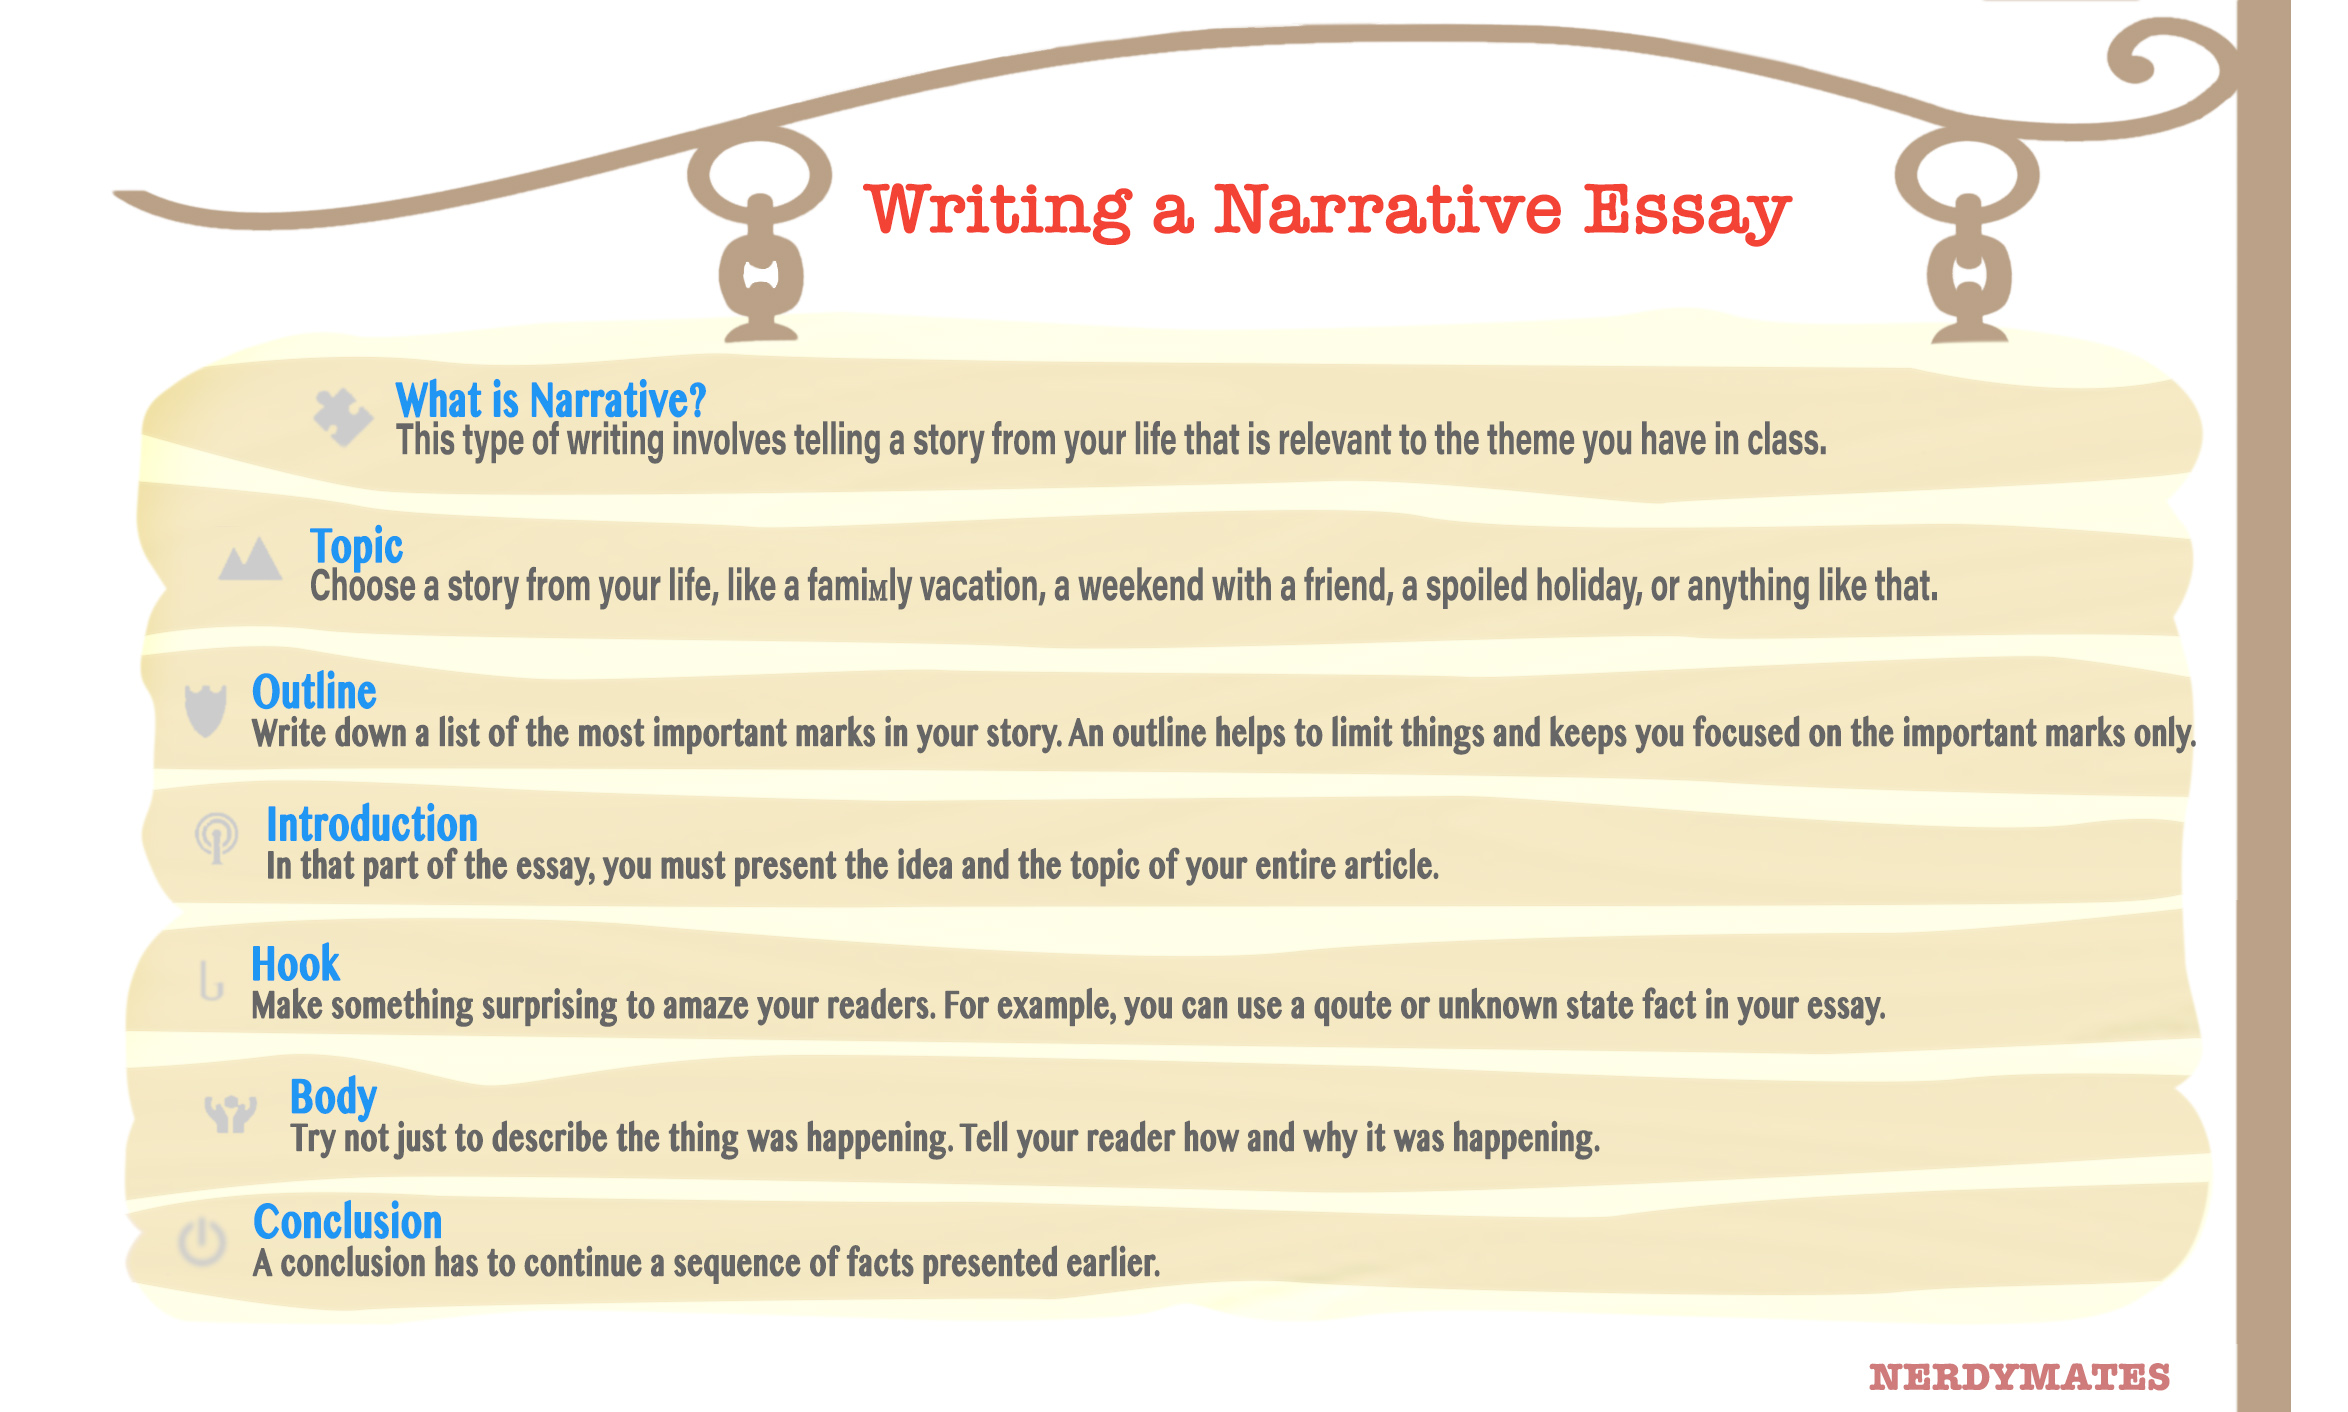 tips for writing narrative essays What is a narrative essay narration is writing that tells a story a good way to wrap your mind around a narrative is to think about how a narrator in a film presents a scene.